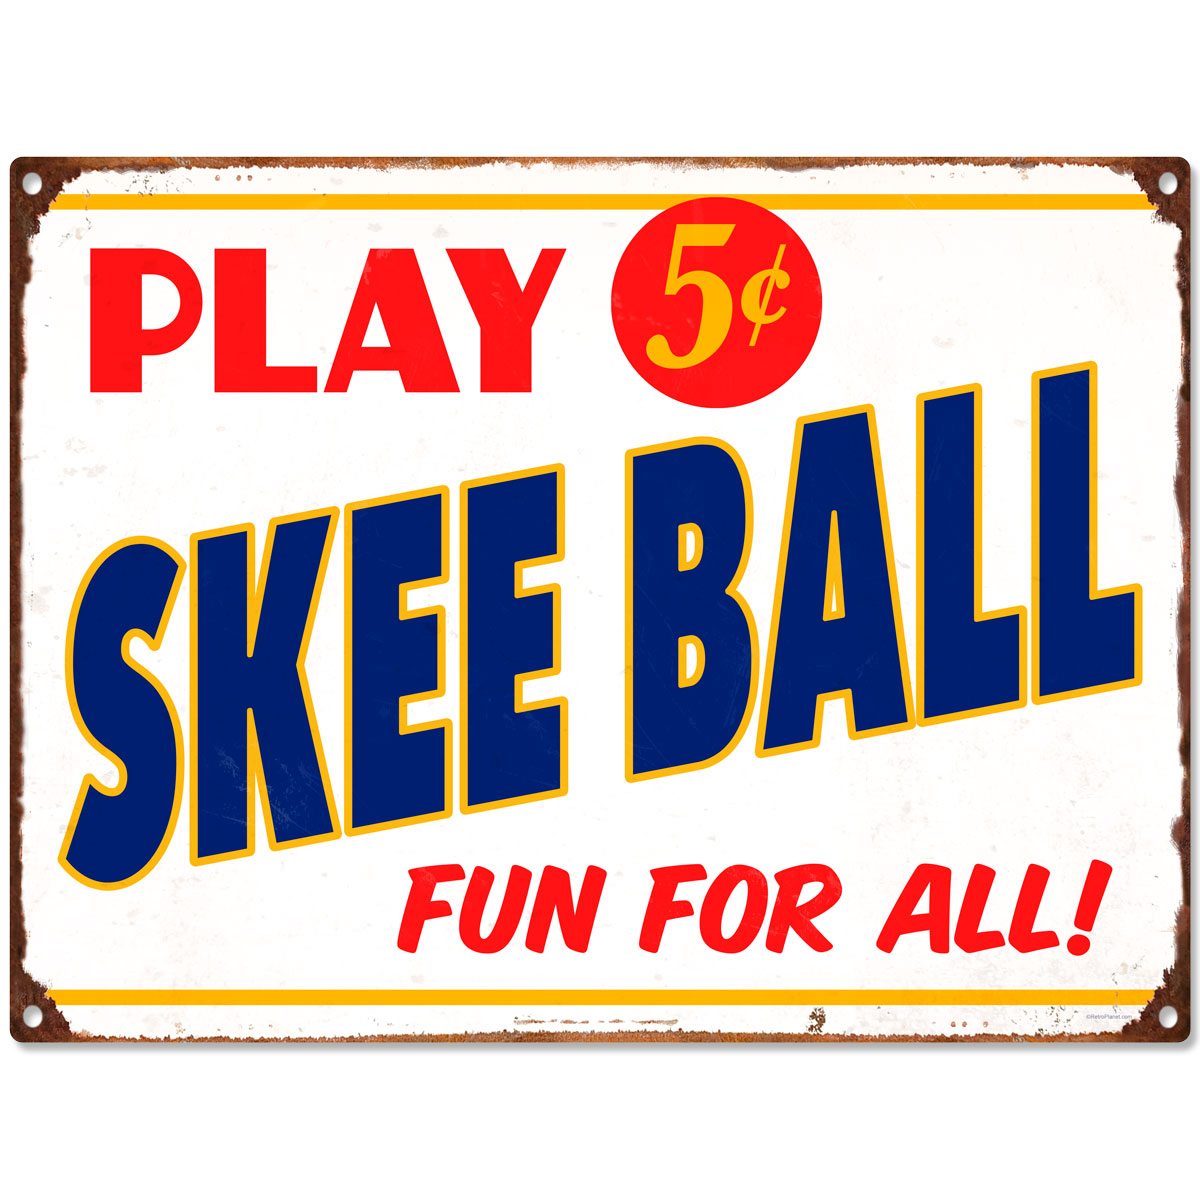 Game Room Wall Decor Play Skee Ball 5 Cents Metal Sign Vintage Style Game Room Wall